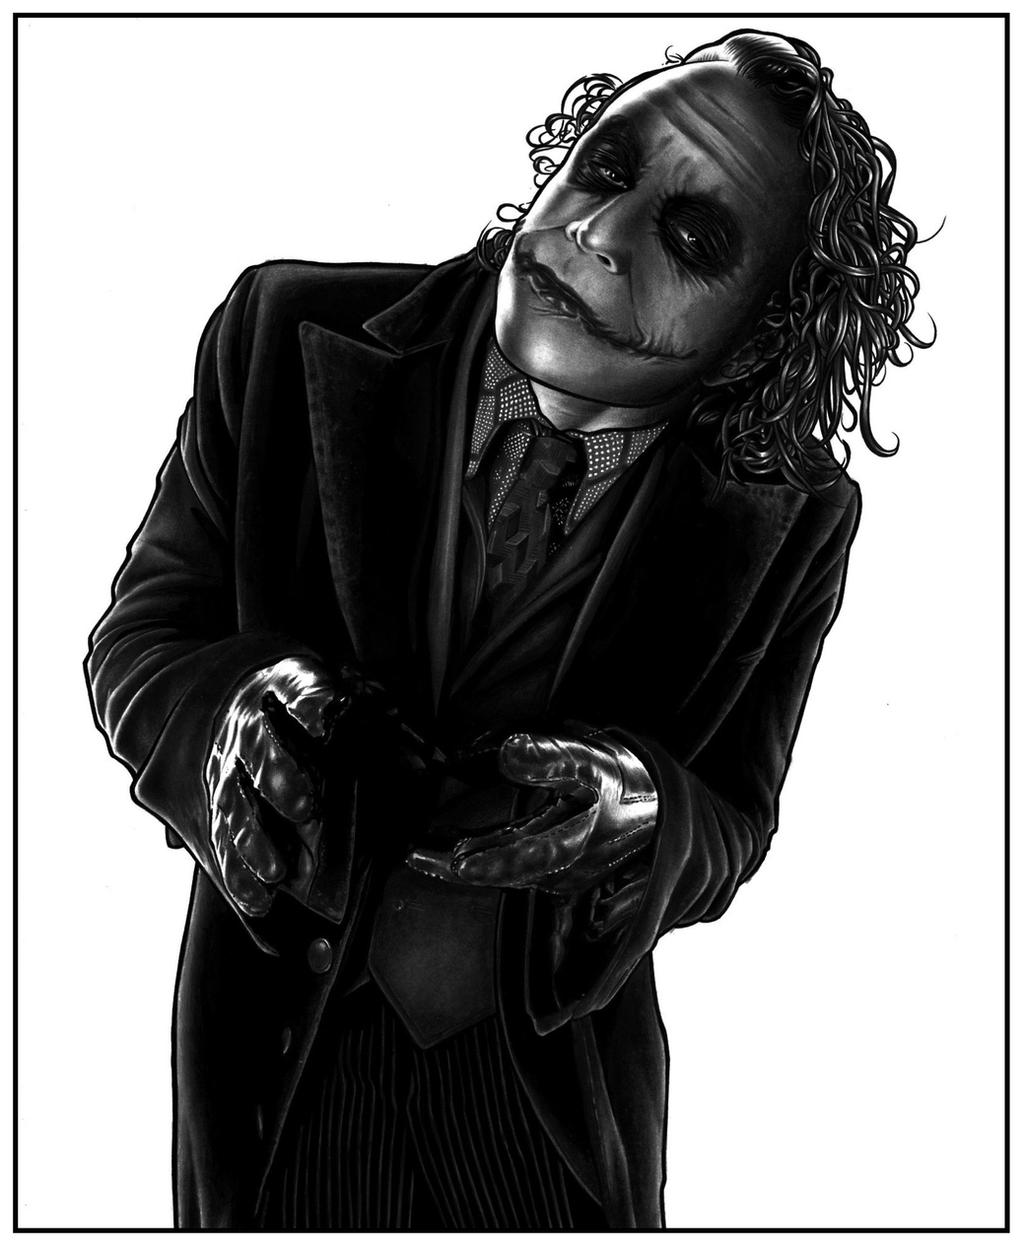 The Joker - 8 by DMThompson